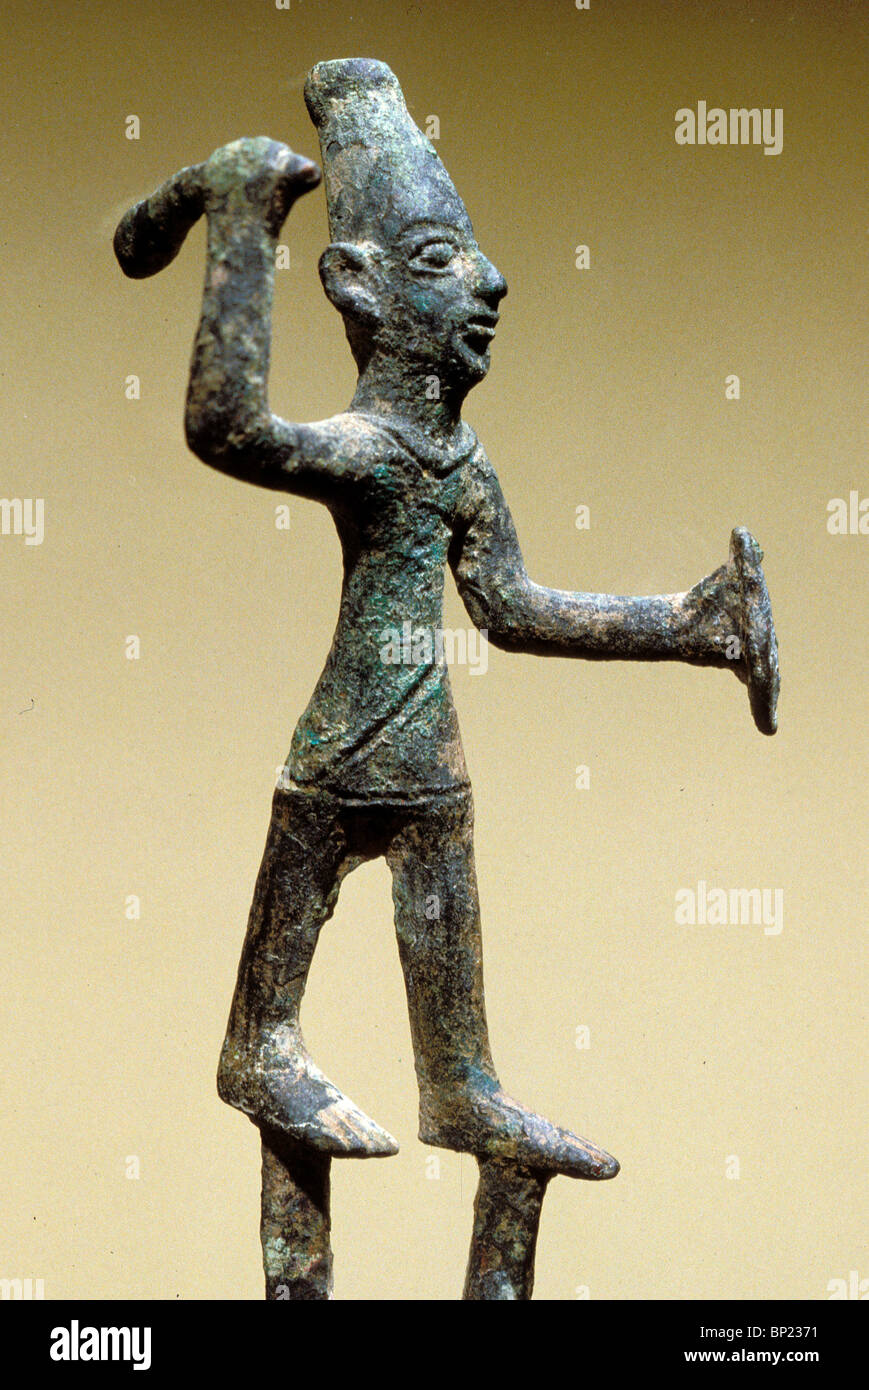 Baal God | www.pixshark.com - Images Galleries With A Bite! Baal Canaanite God